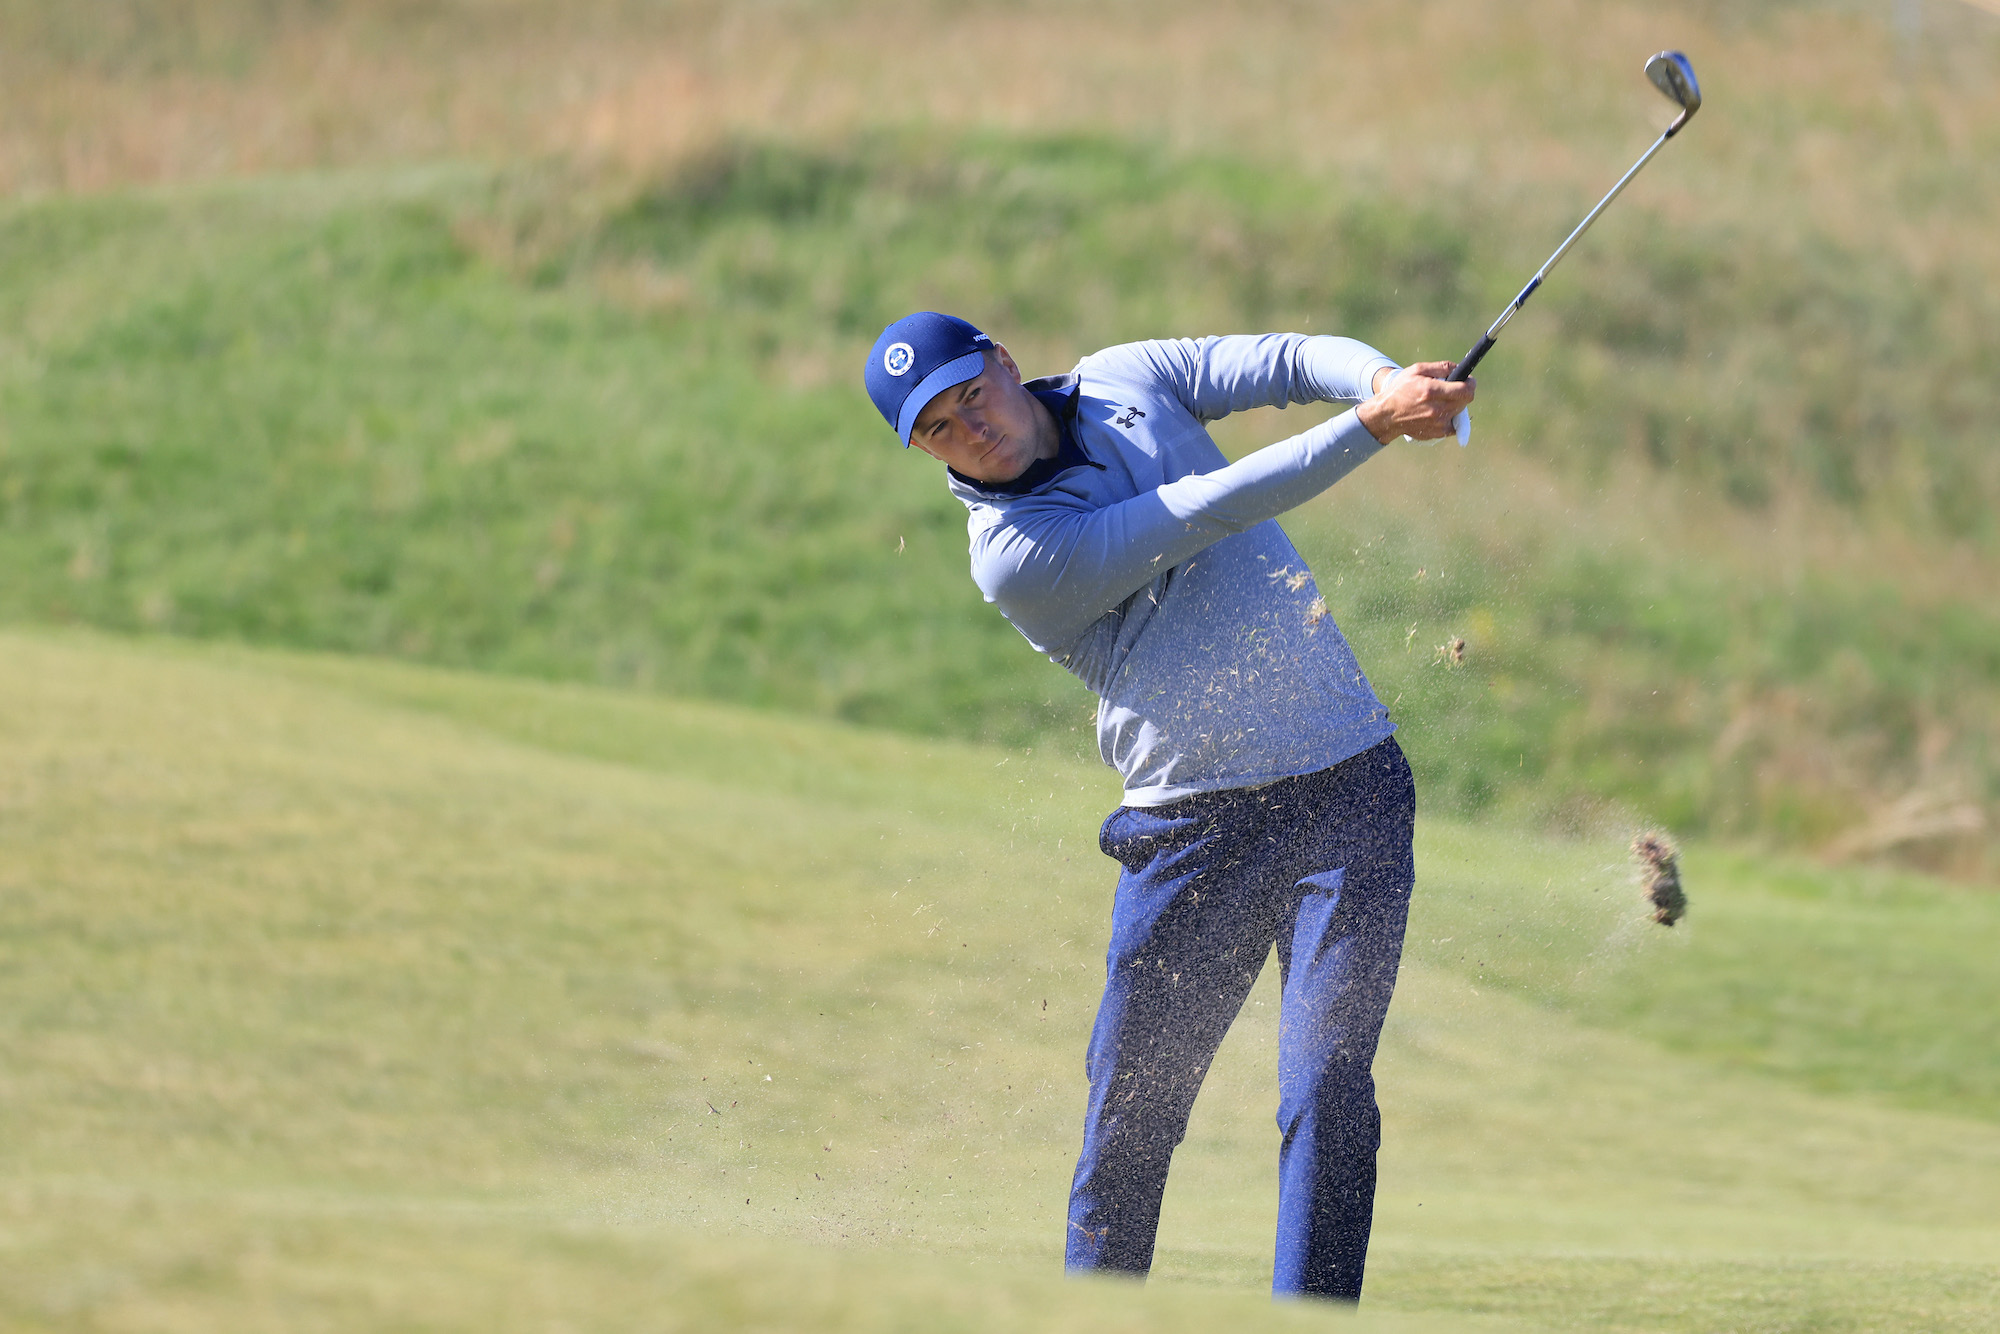 2021 Open Championship: Round 2 - Second Shot on No. 2